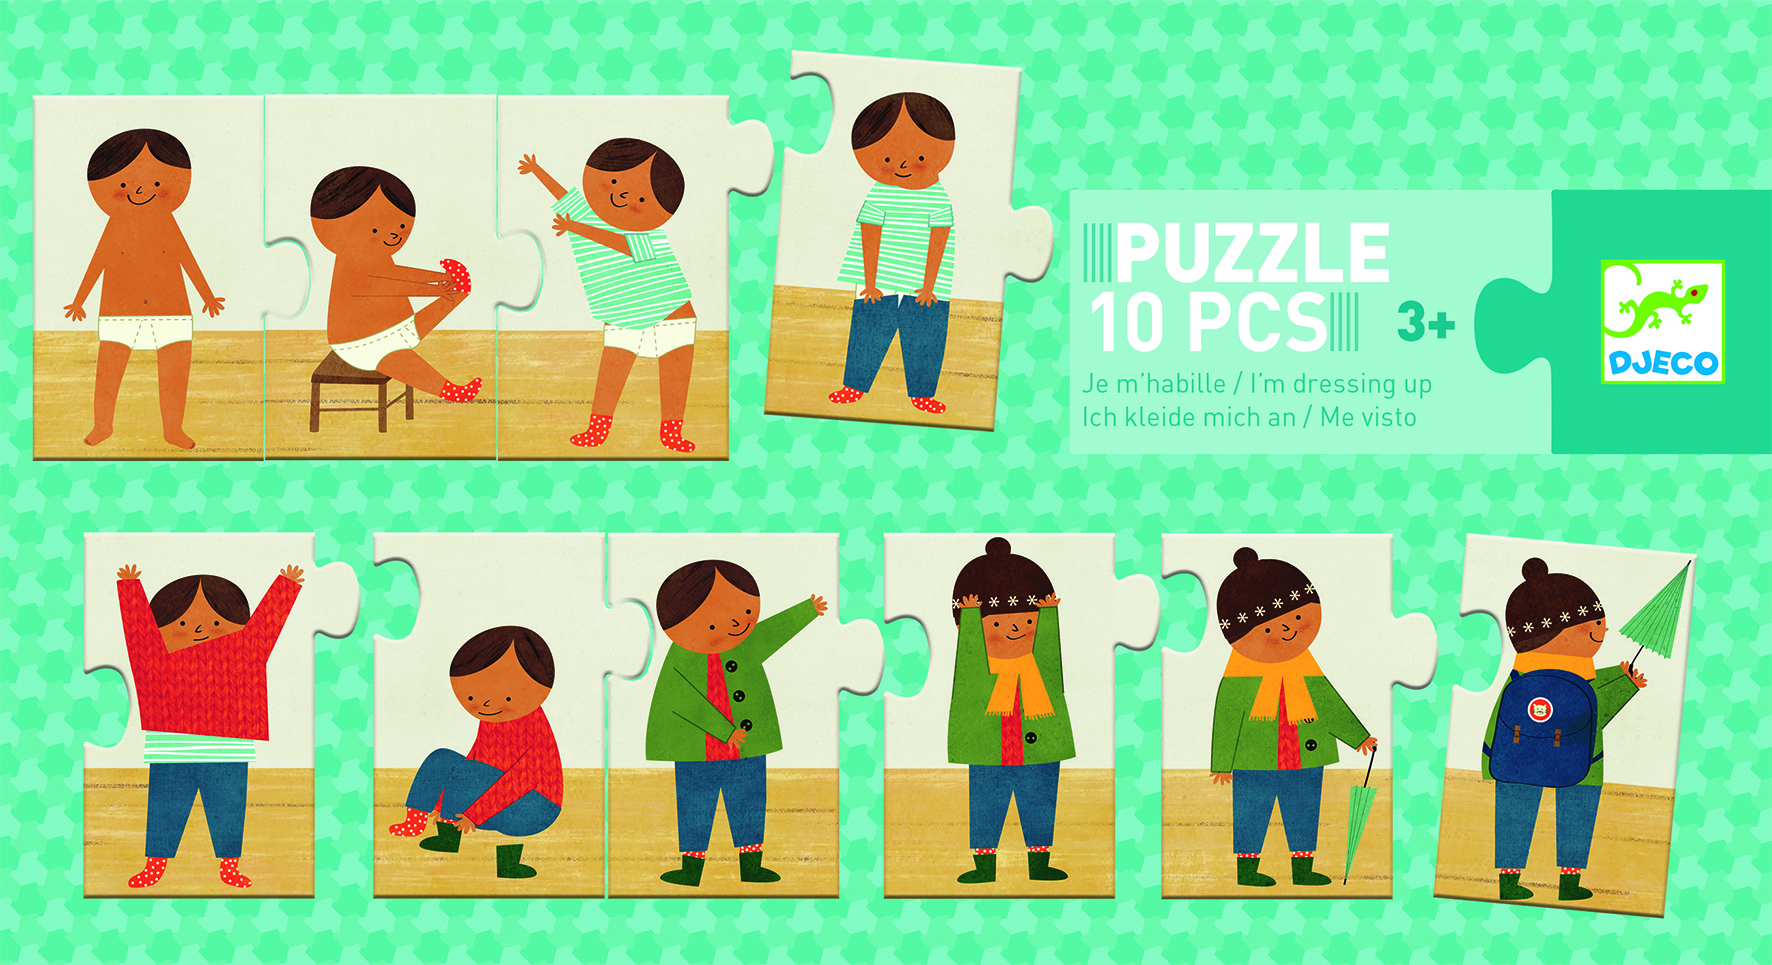 I'm Dressing Up! Puzzle from Djeco